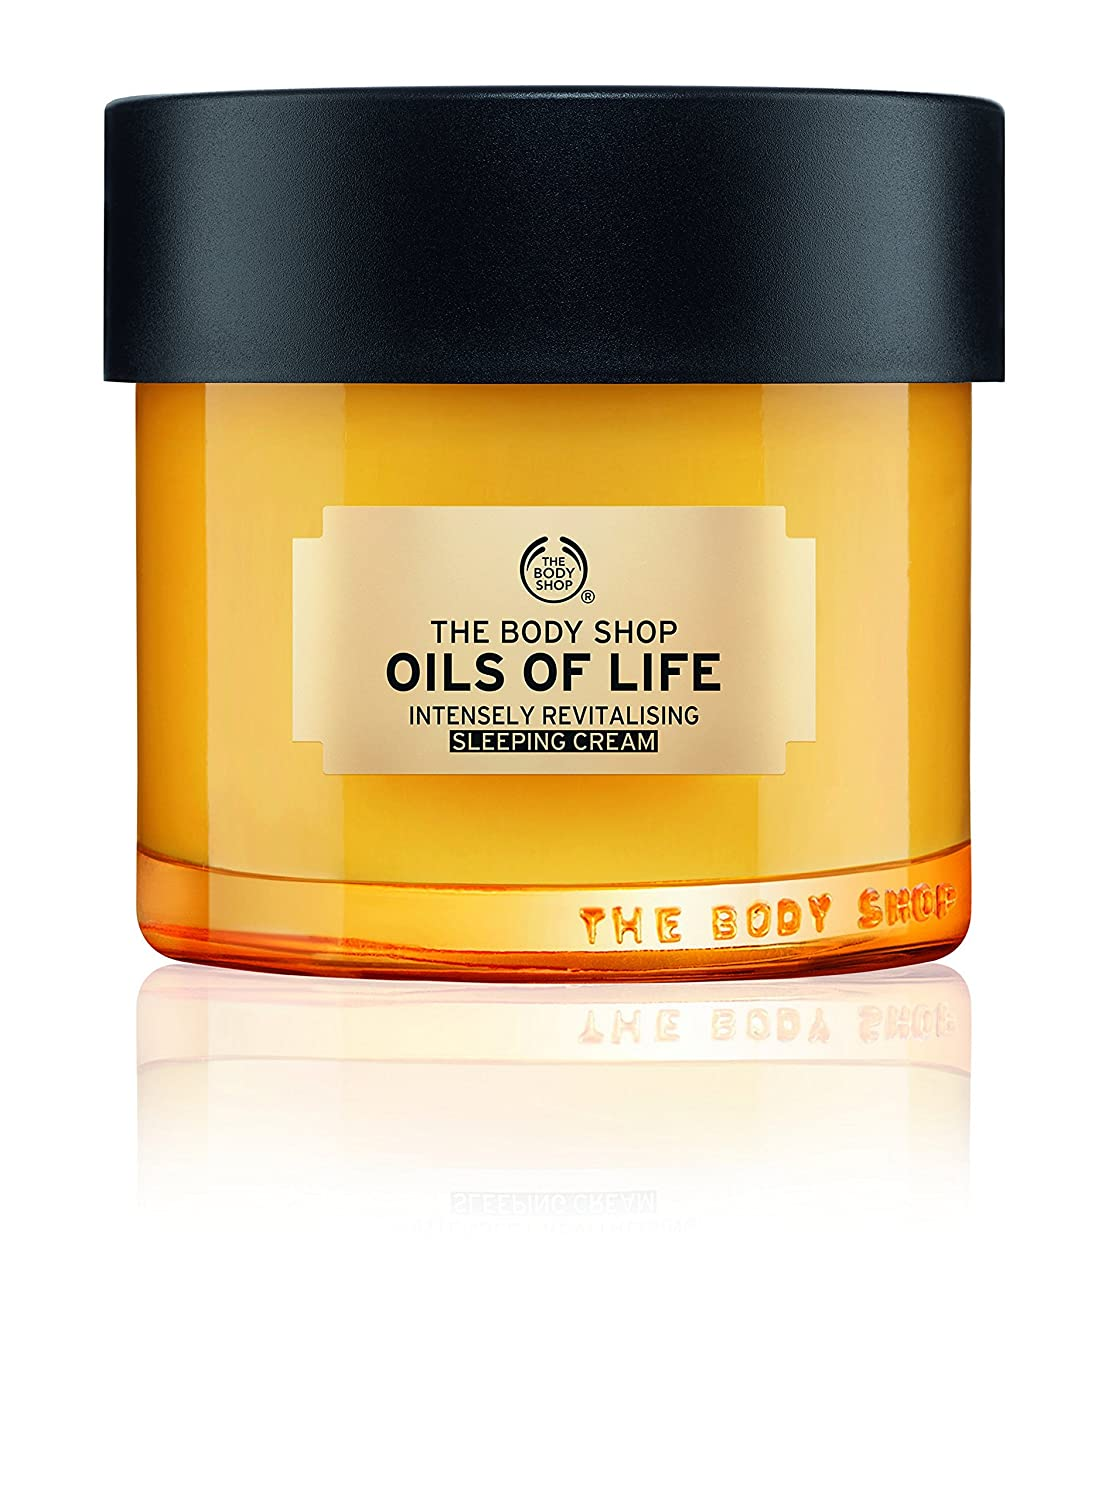 The Body Shop Oils Of Life Intensely Revitalising Sleeping Cream, 100% Vegan Night Cream, 2.7 Oz